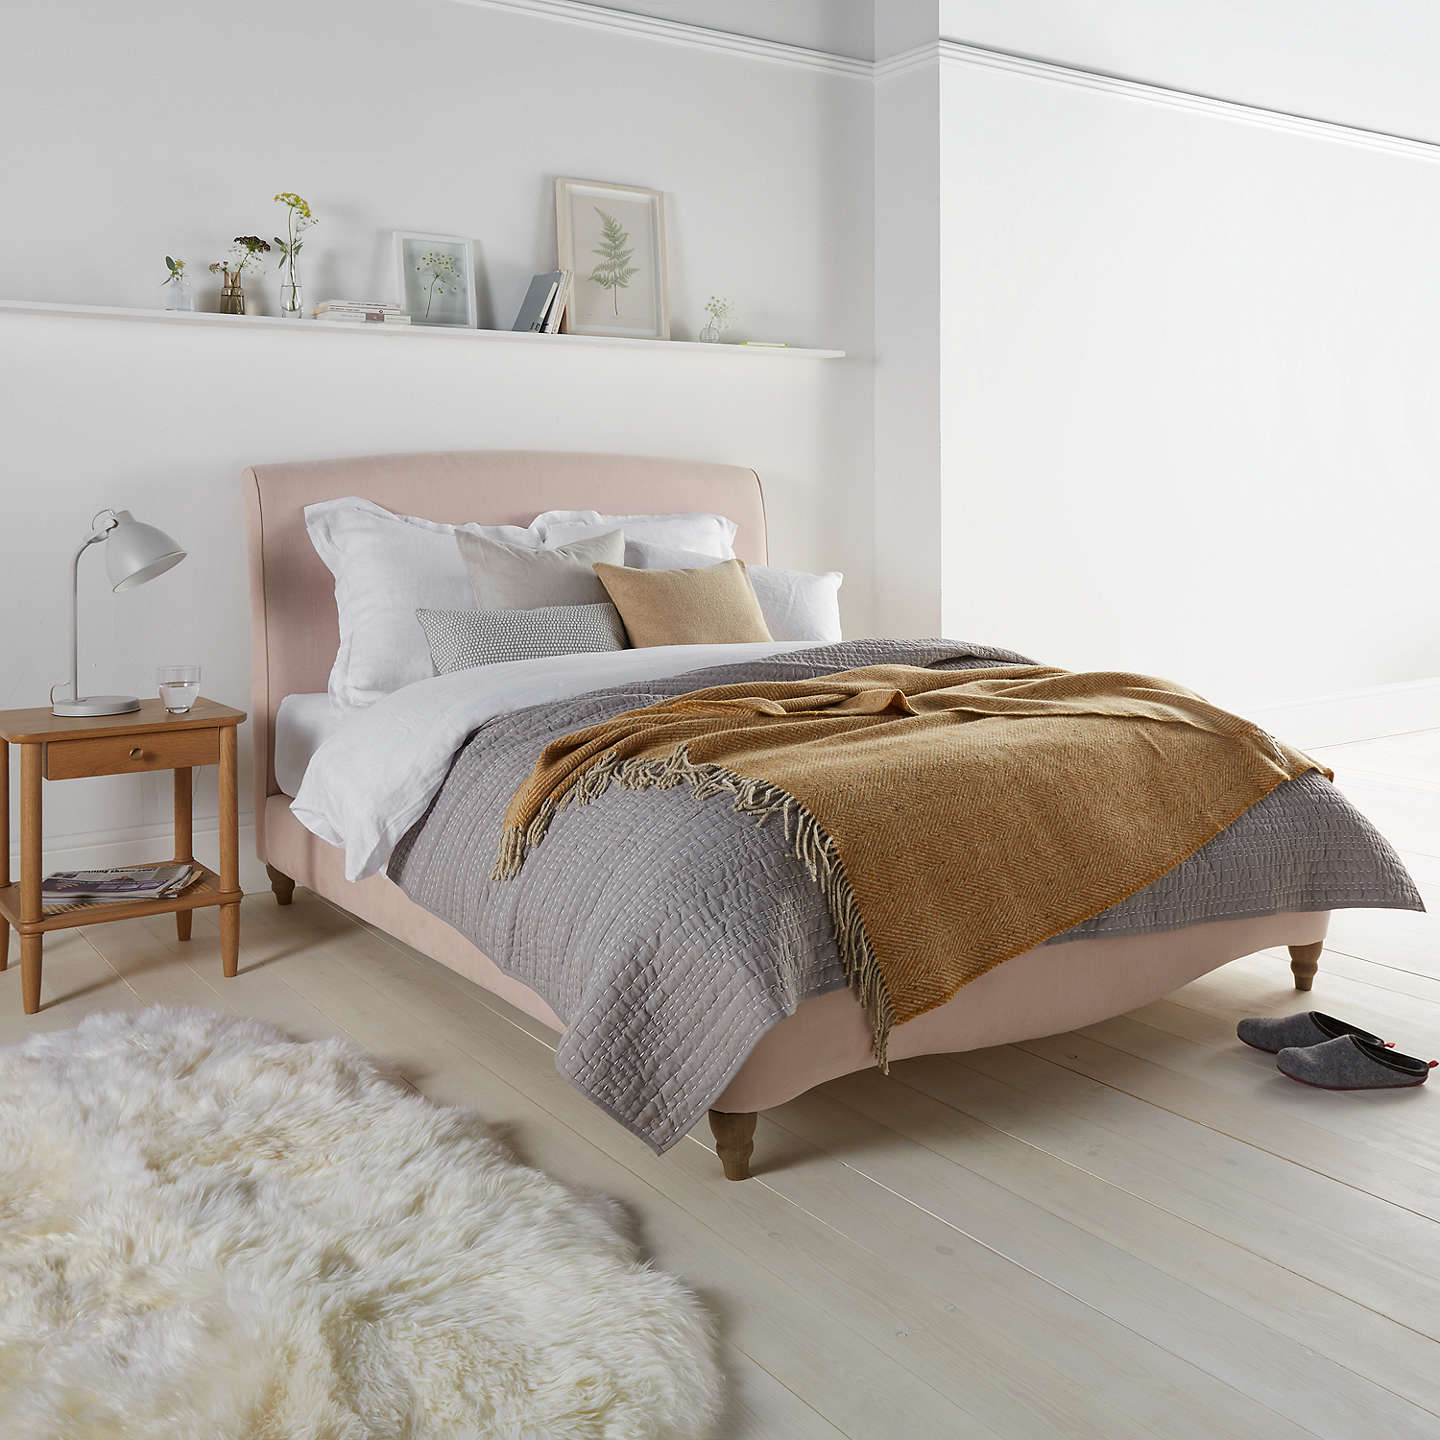 BuyFudge Bed Frame by Loaf at John Lewis in Brushed Cotton, Double, Faded Pink Online at johnlewis.com